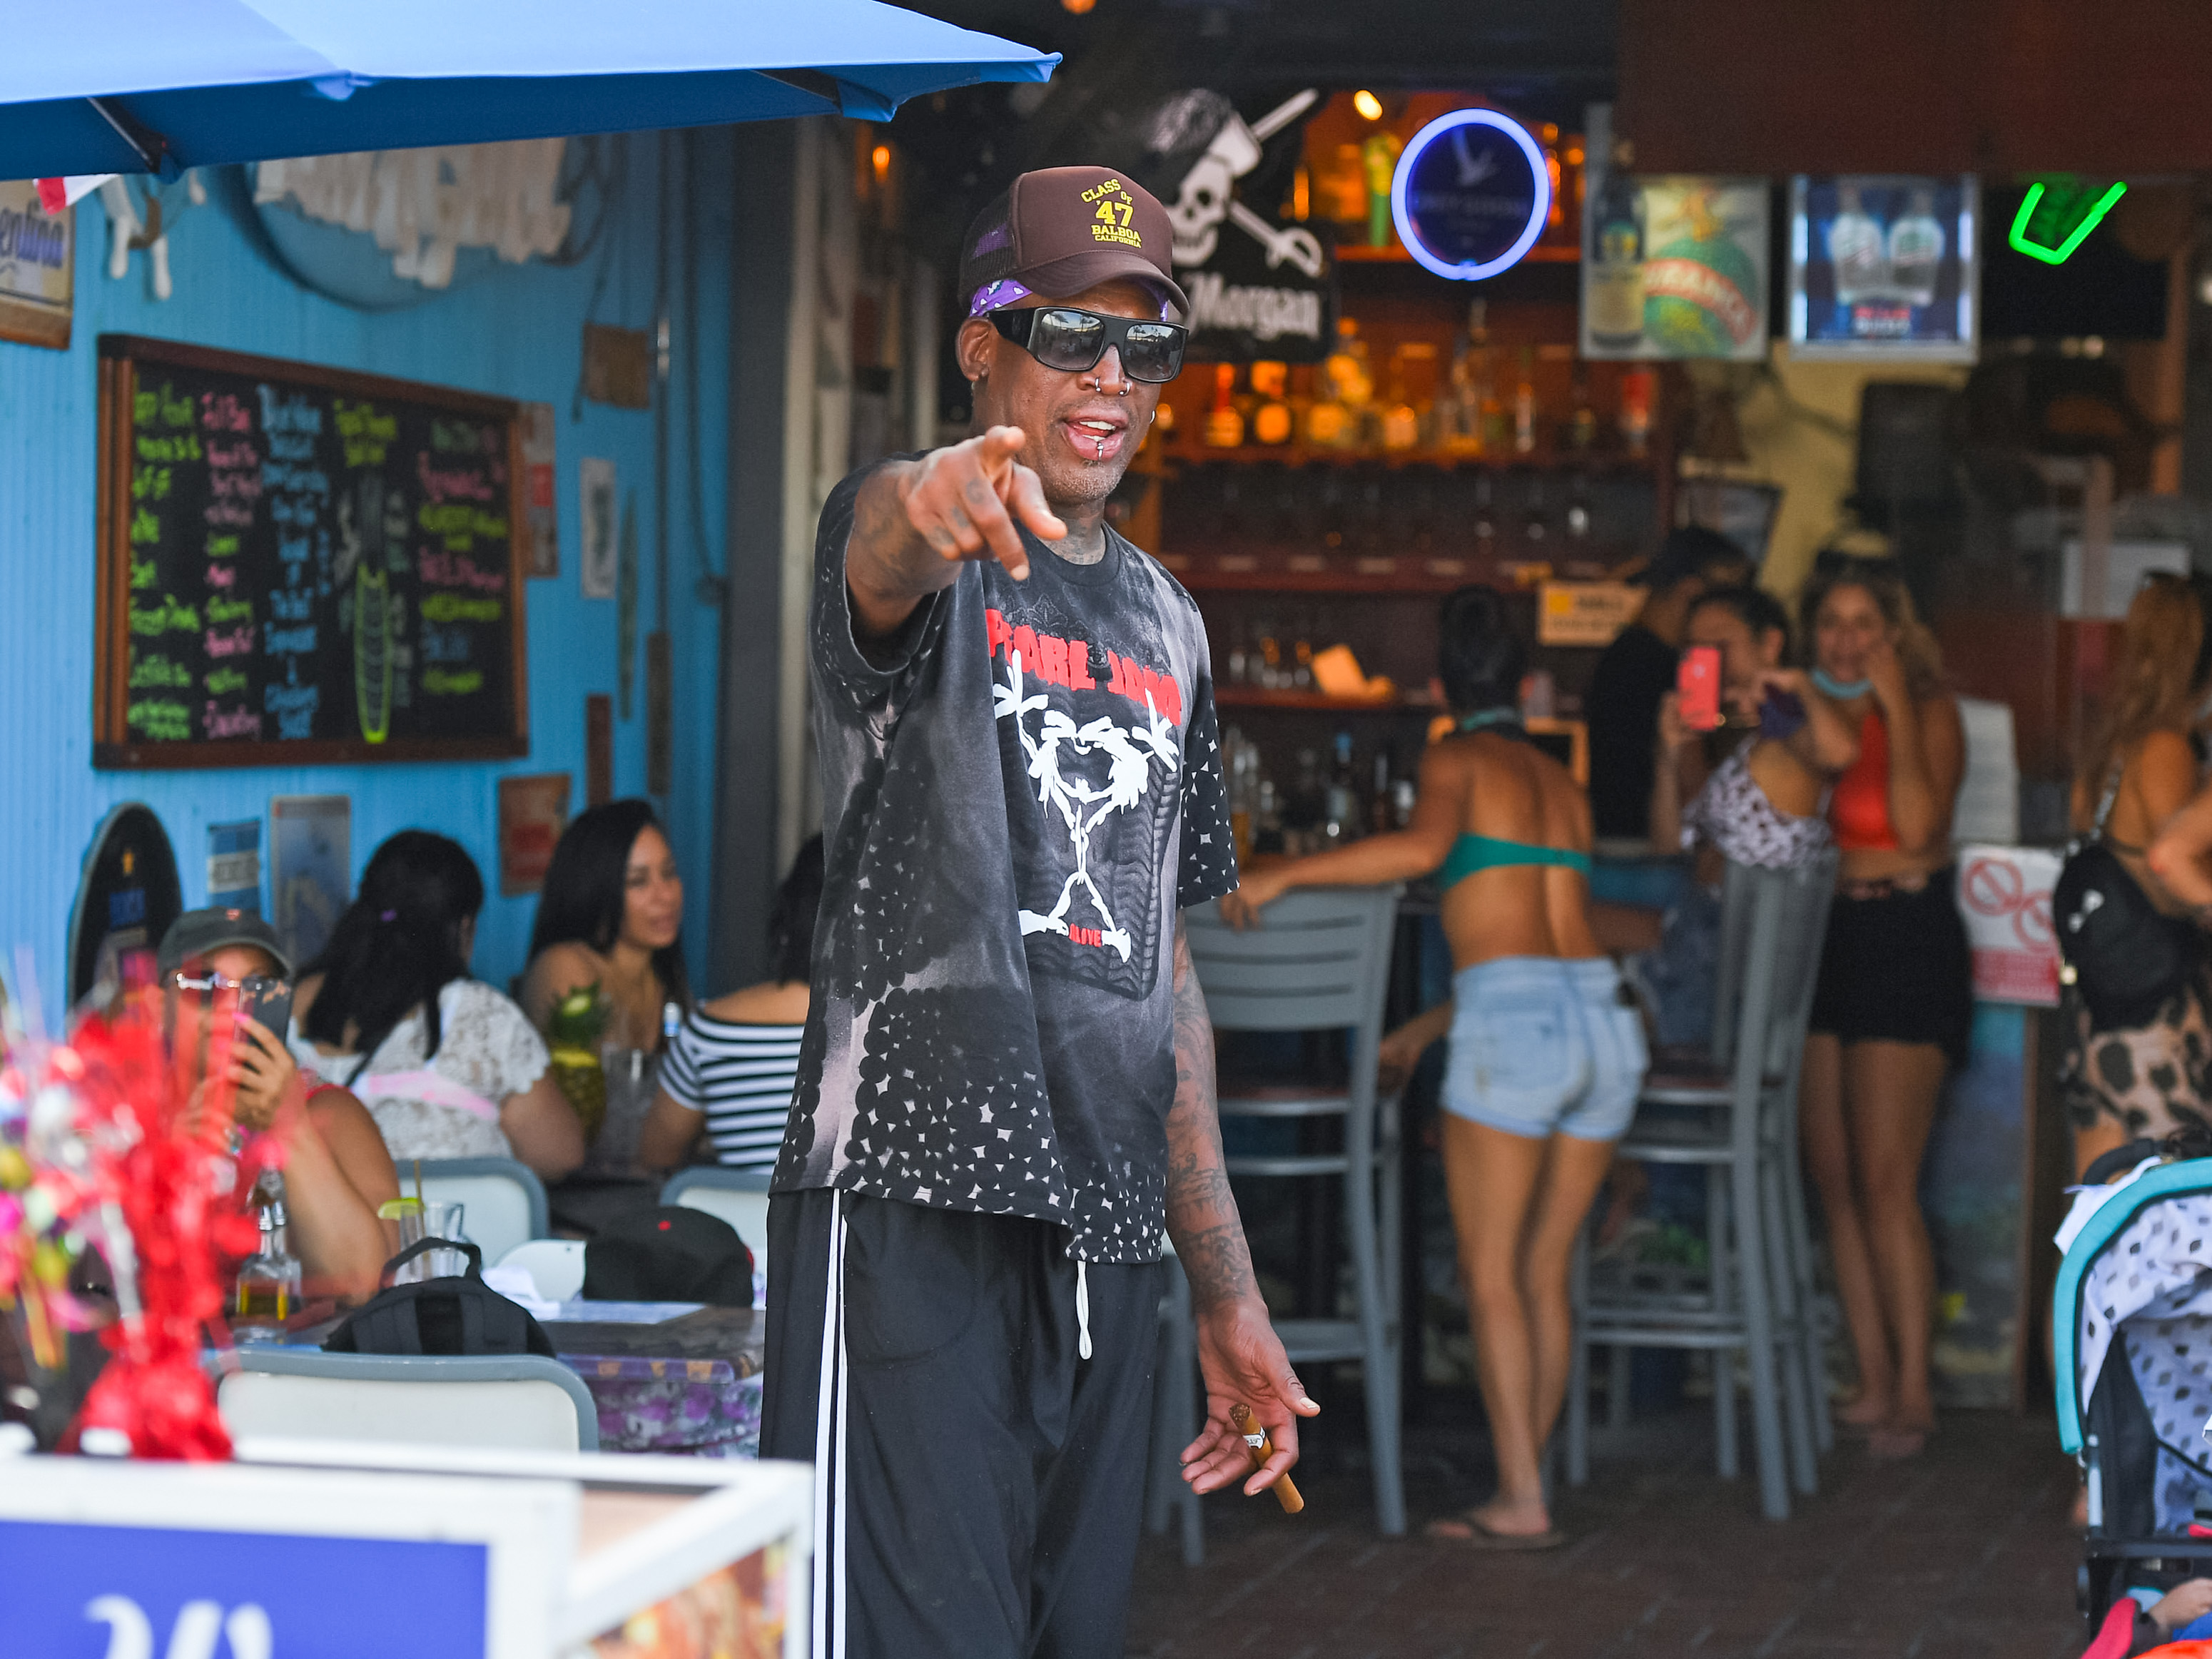 Dennis Rodman Helped an Unlikely Friend Overcome a Devastating Shooting Death and Avoid Racism